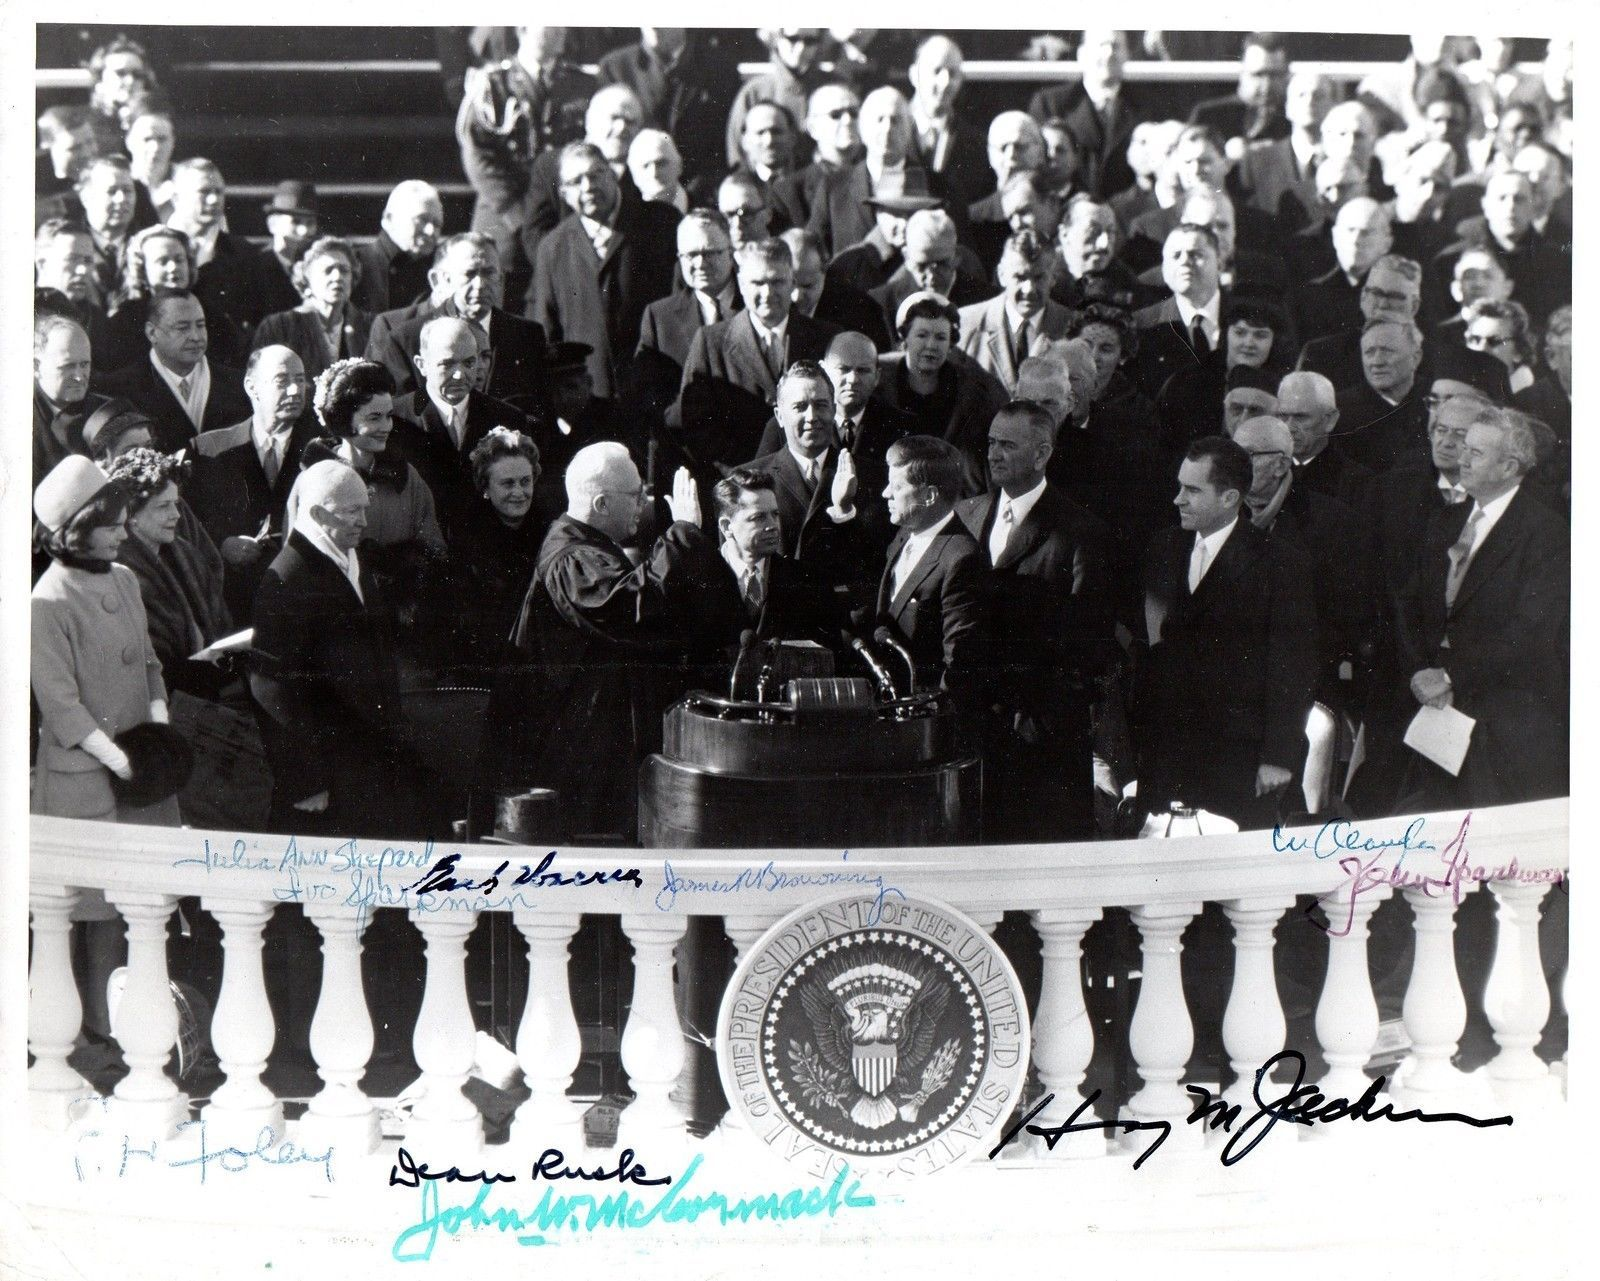 JOHN F. KENNEDY Inauguration Photo signed by Earl Warren, Wm. Douglas, Rusk +++